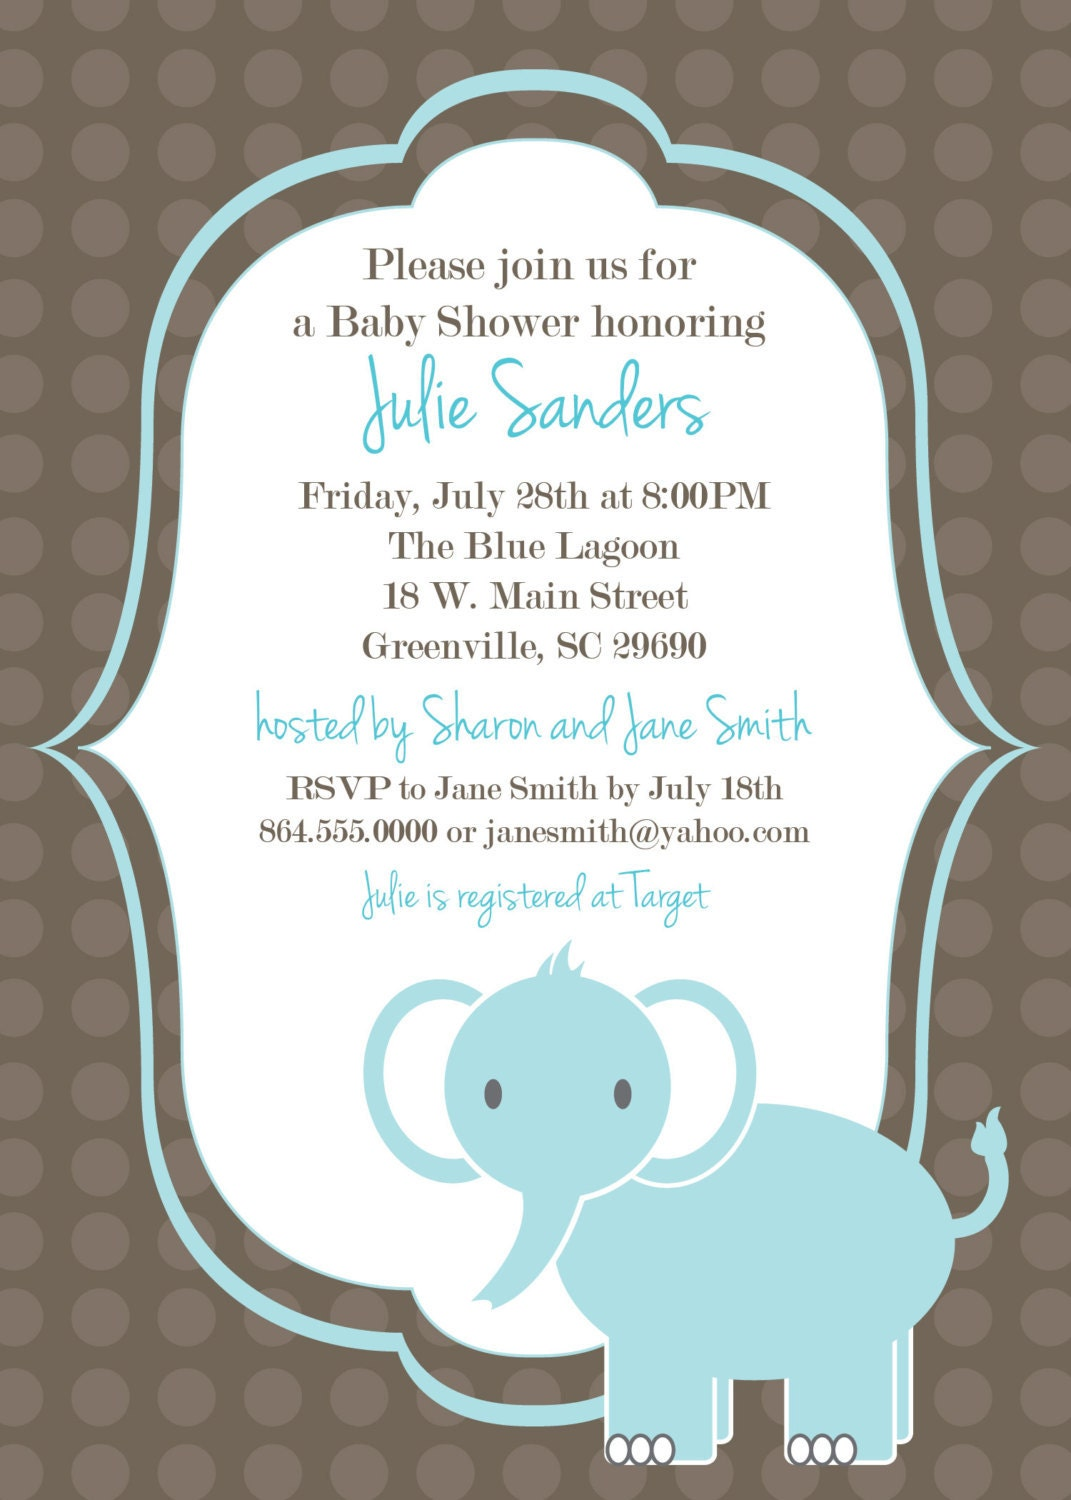 Effortless image intended for free printable baby shower invitations